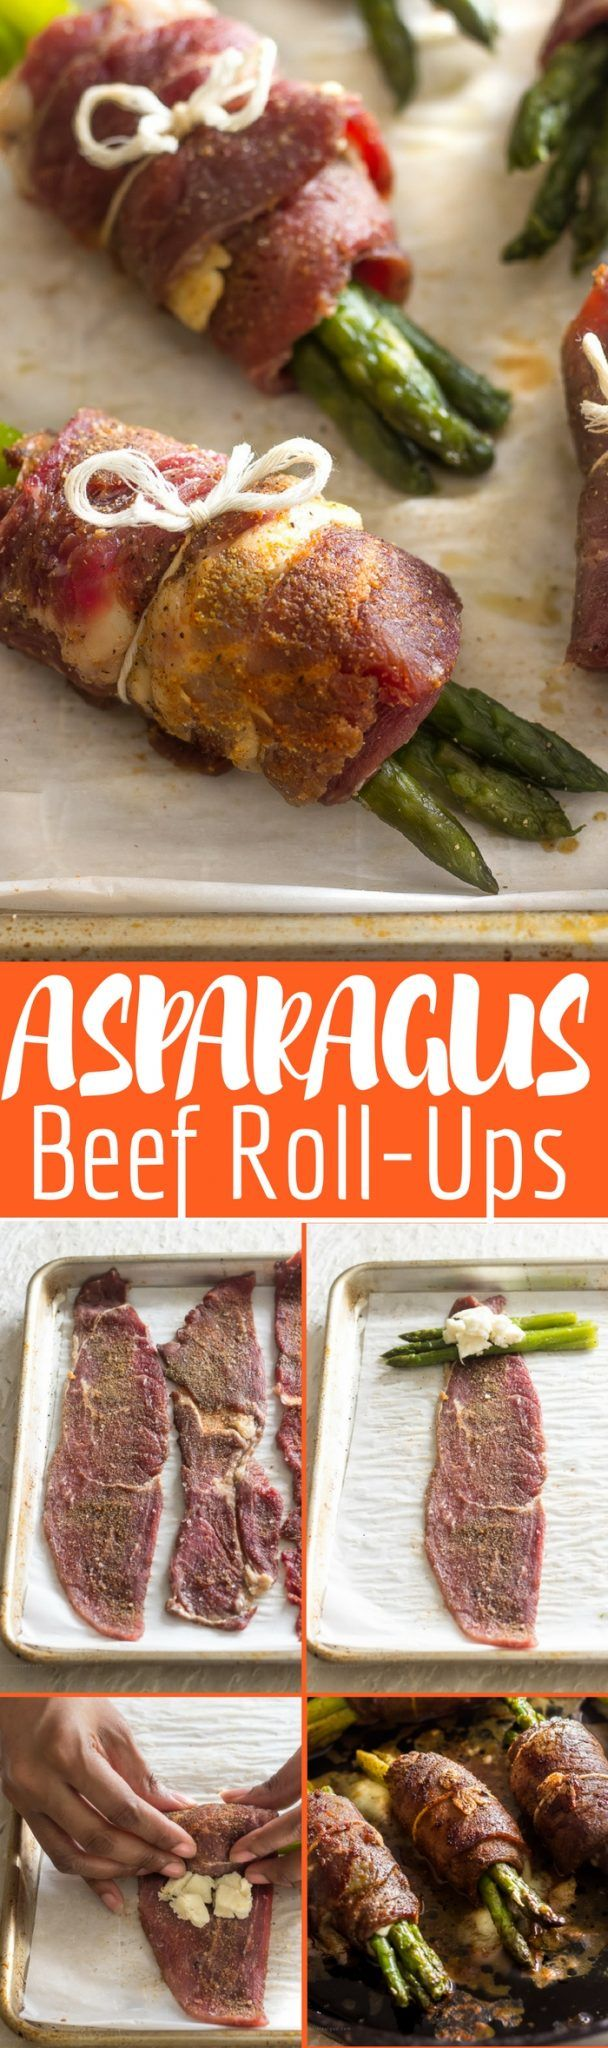 Beef roll-ups and fresh mozzarella and asparagus.